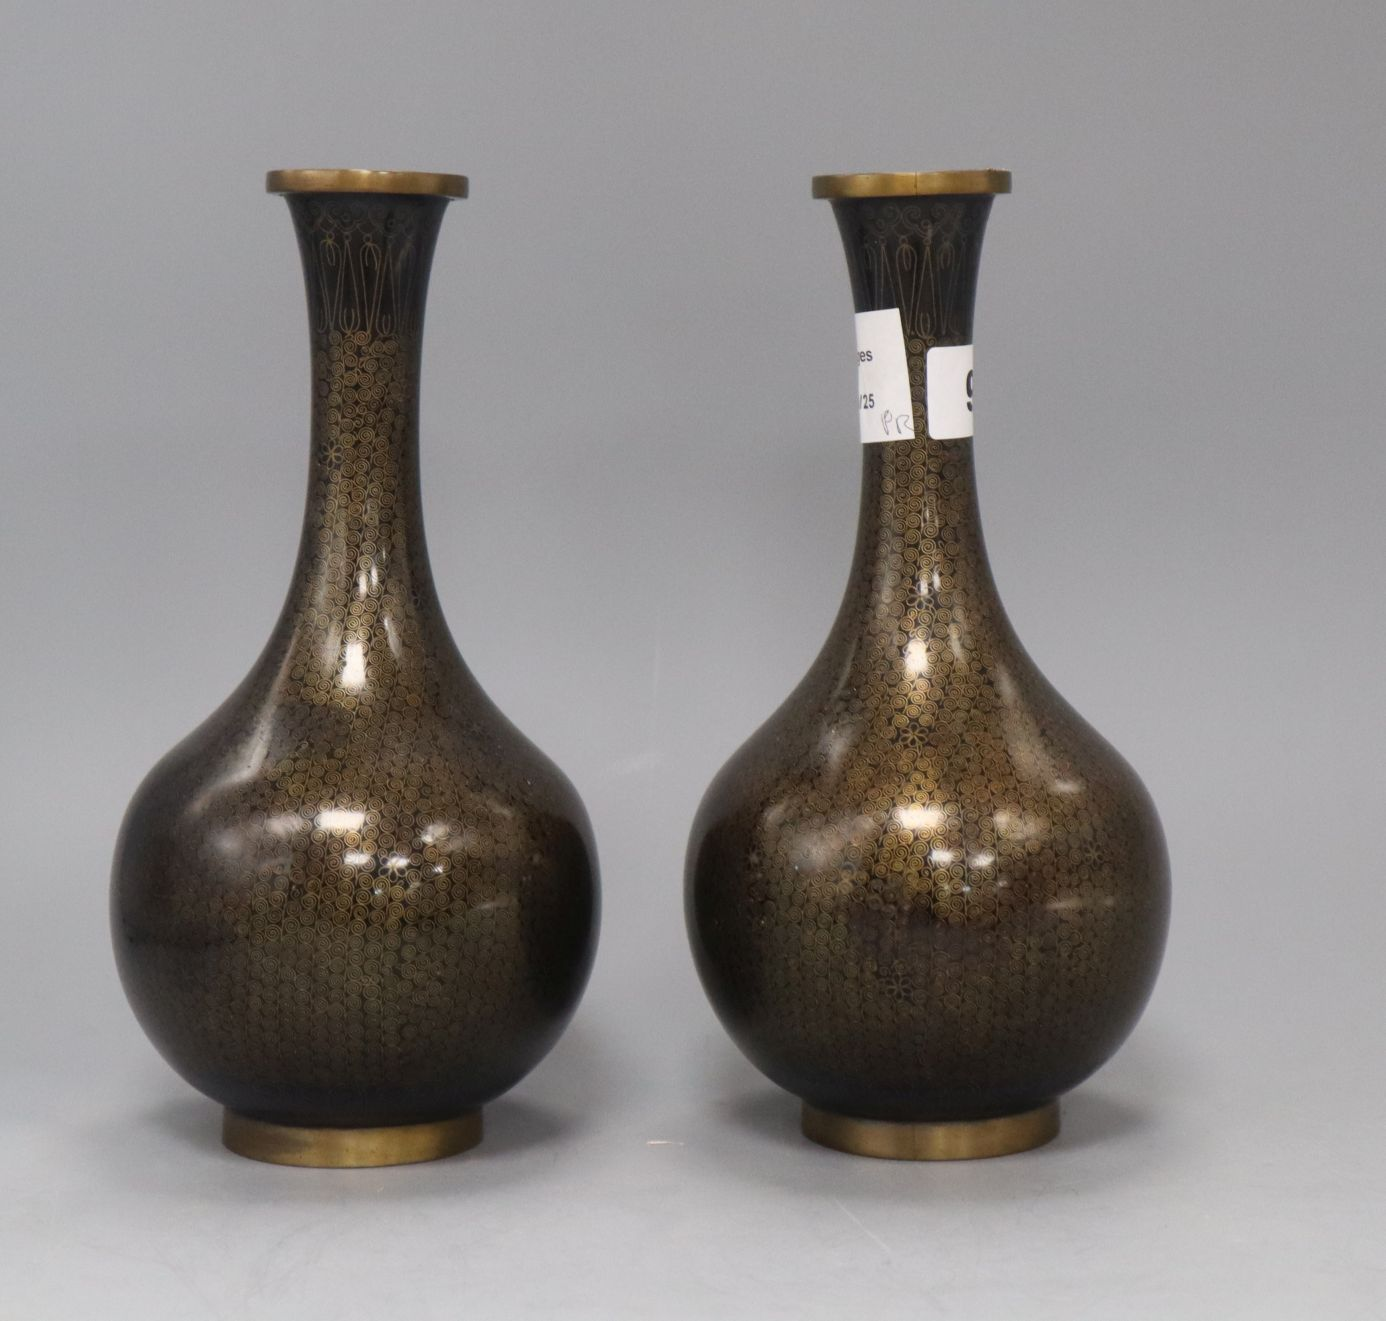 Lot 9 - A pair of Chinese black ground cloisonne enamel bottle vases, mid 20th century height 24cm